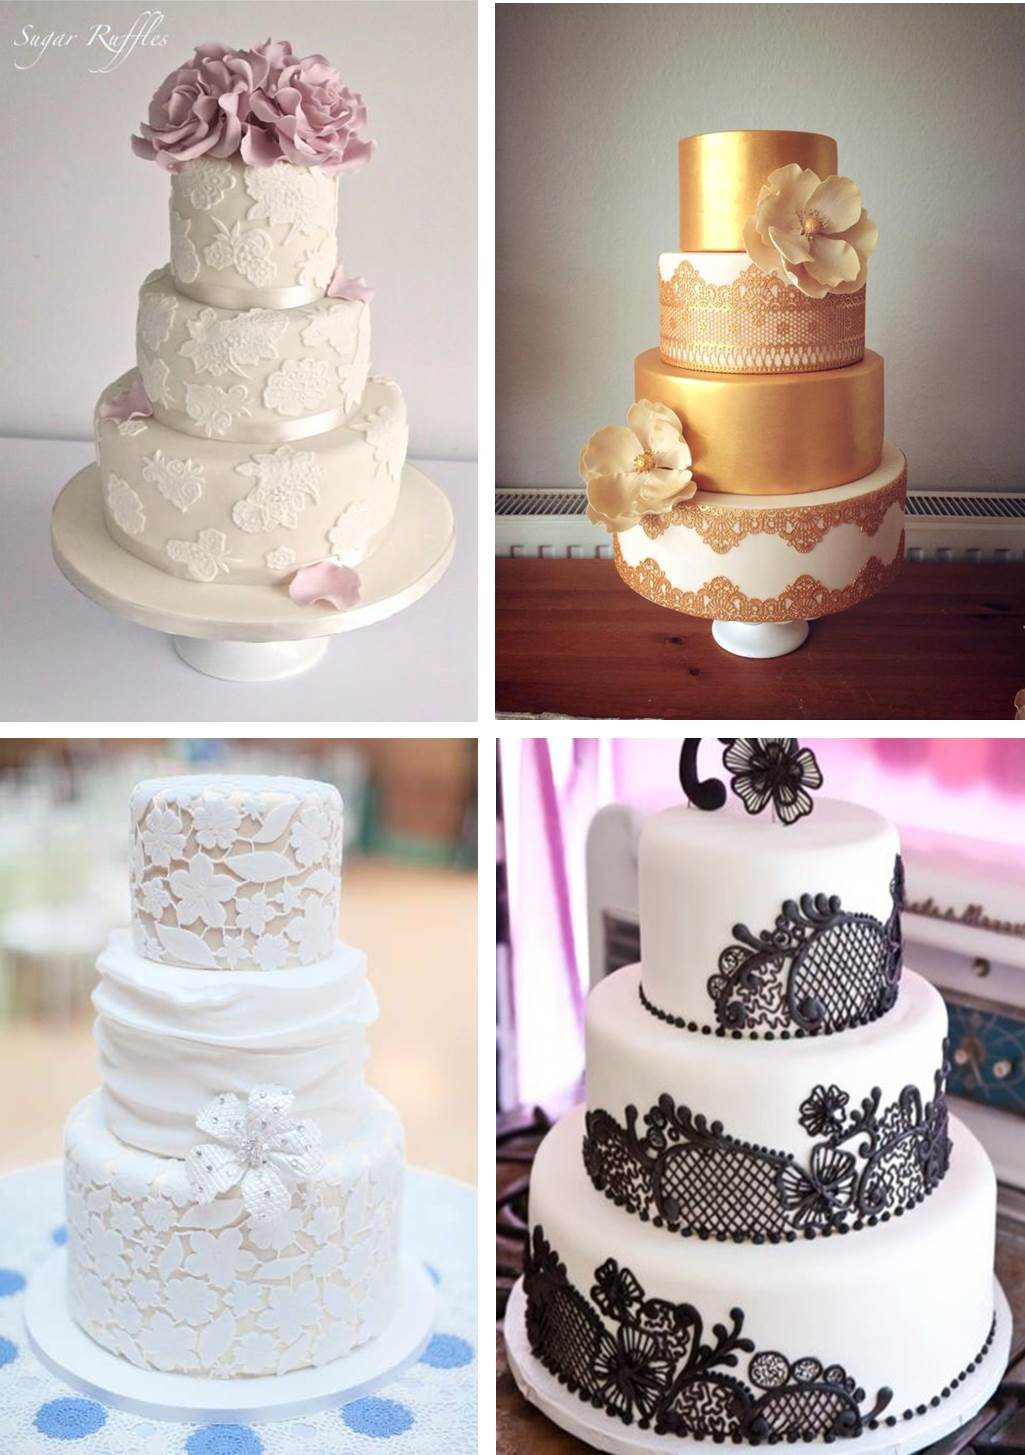 How To Mix Cake Lace